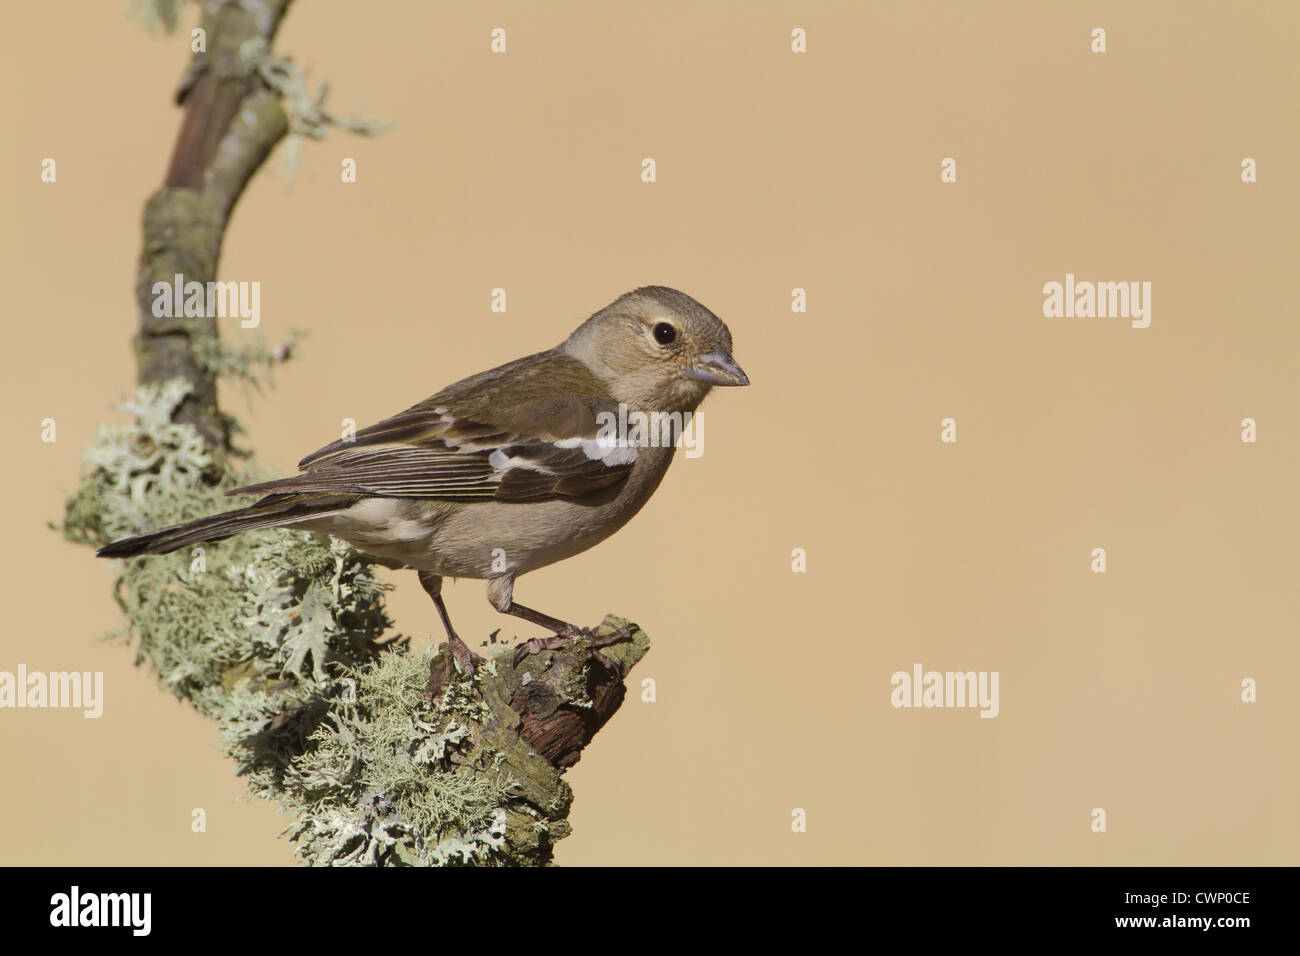 Chaffinch (Fringilla coelebs) adult female, perched on lichen covered twig, Castilla y Leon, Spain, june - Stock Image